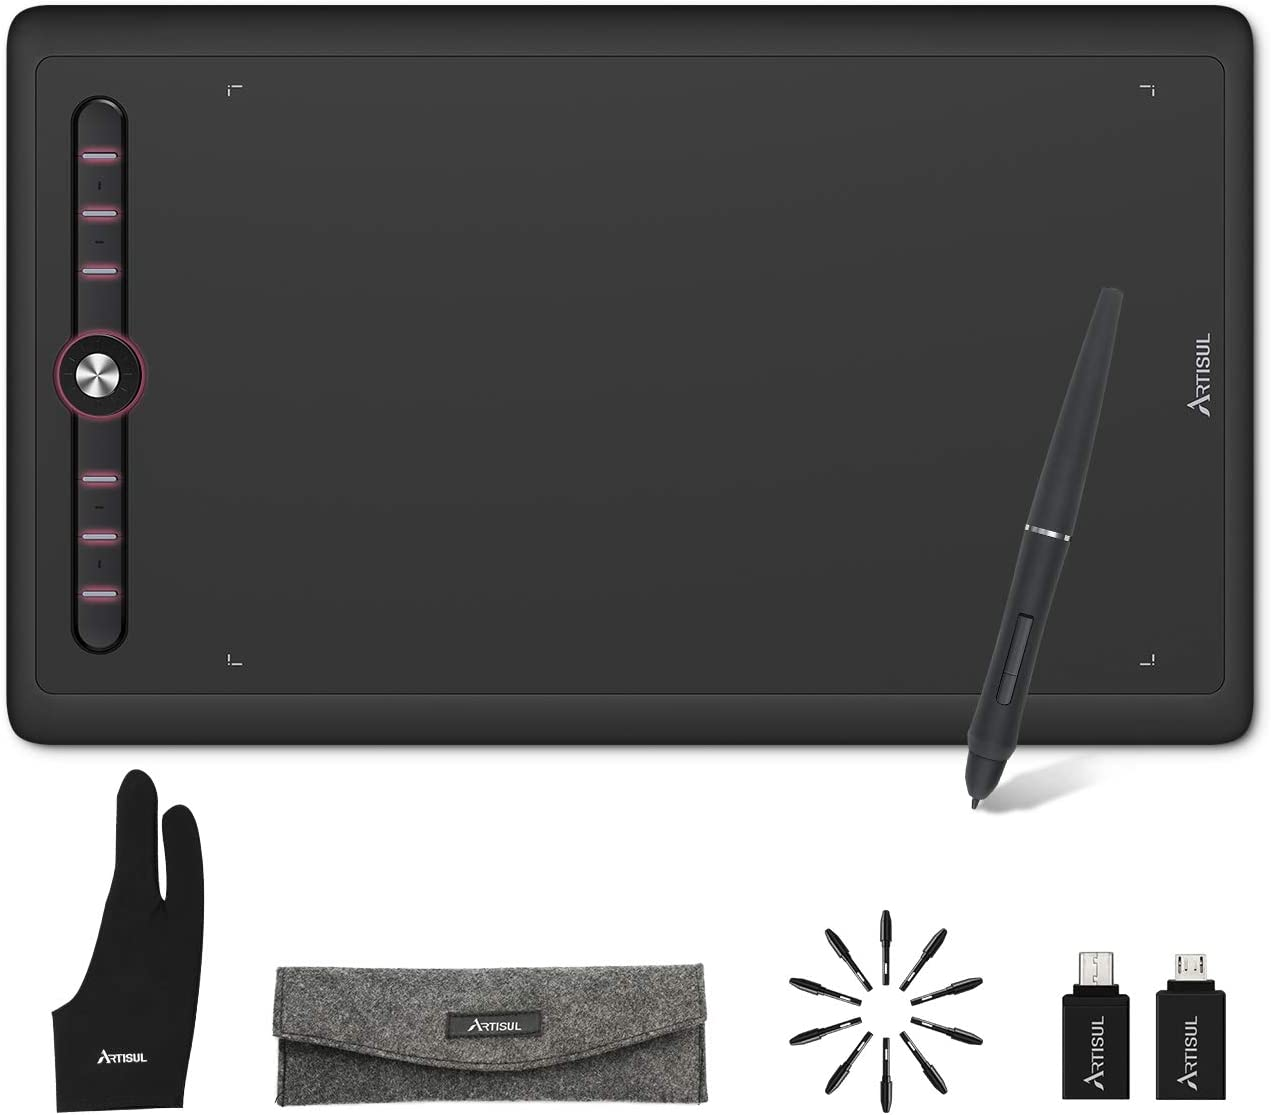 Artisul M0610Pro Graphics Drawing Tablet 10x6inch Large Space Digital Tablet Drawing Pen Tablet with 8192 Levels Battery-Free Stylus ,8 Express Keys,Ultralight Tablet 540g Portable Drawing Tablet